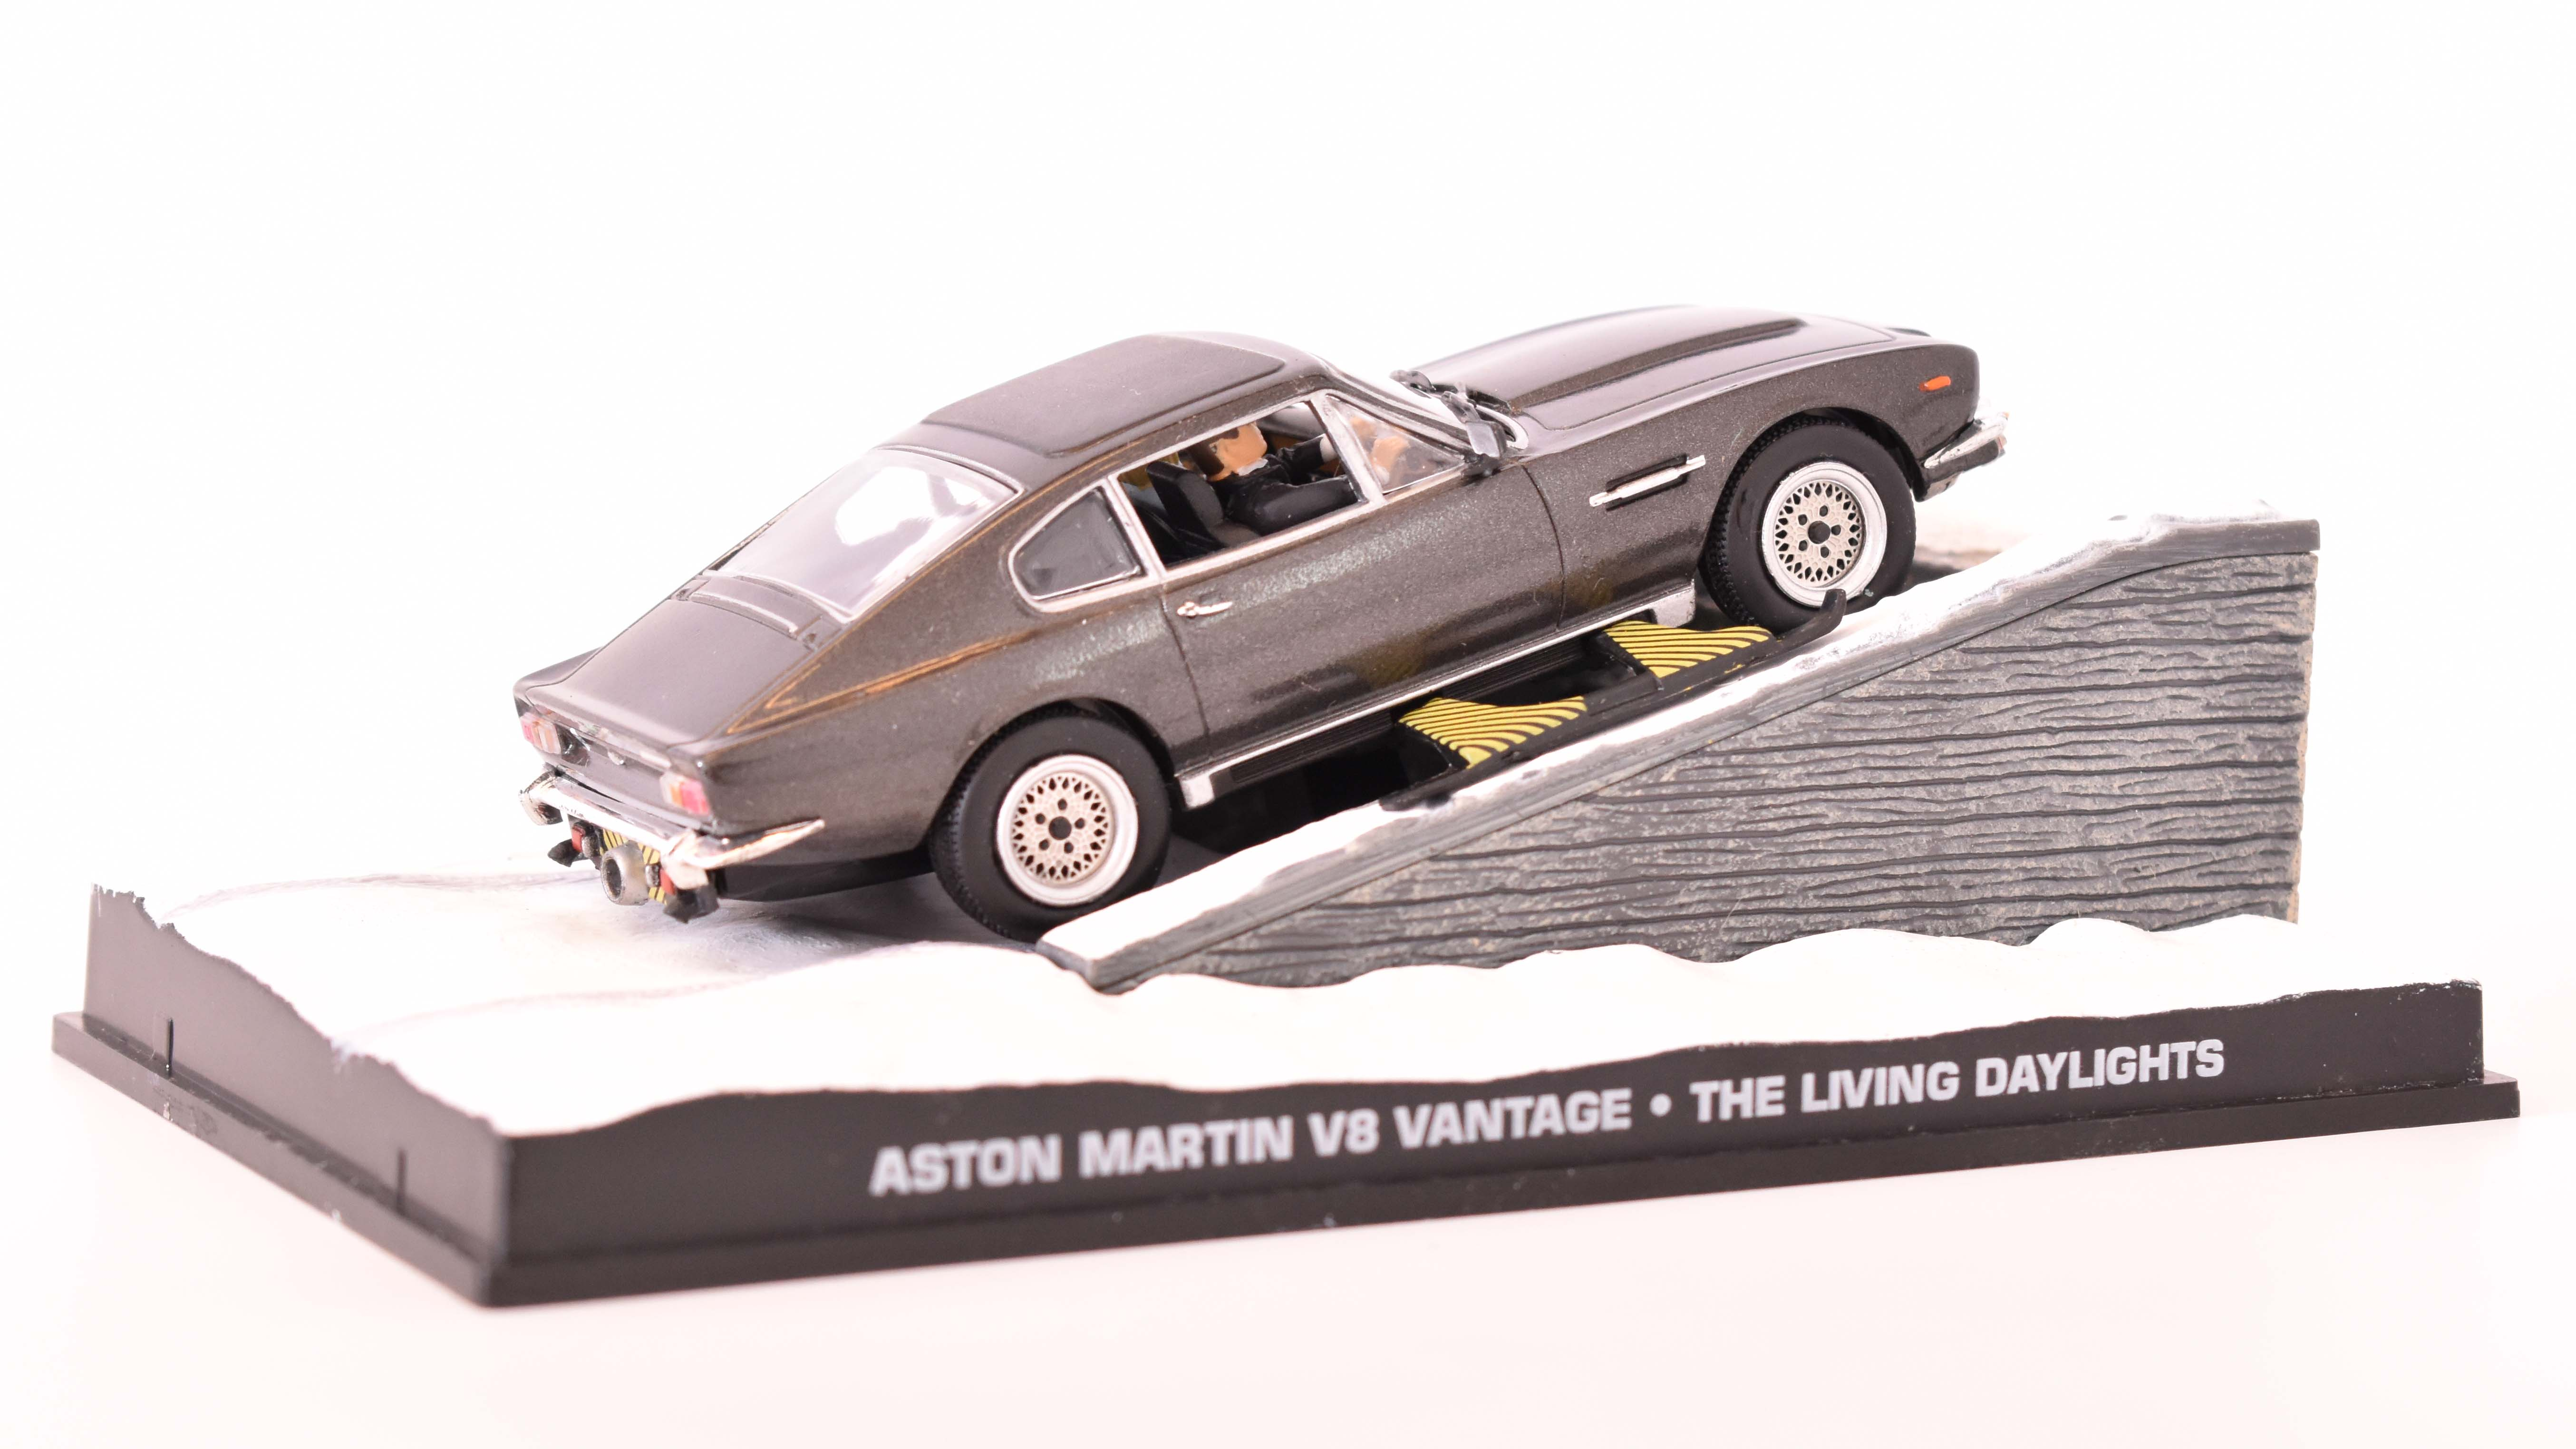 Aston Martin V8 Vantage 1977 James Bond 1:43 časopis AutoModels s modelem